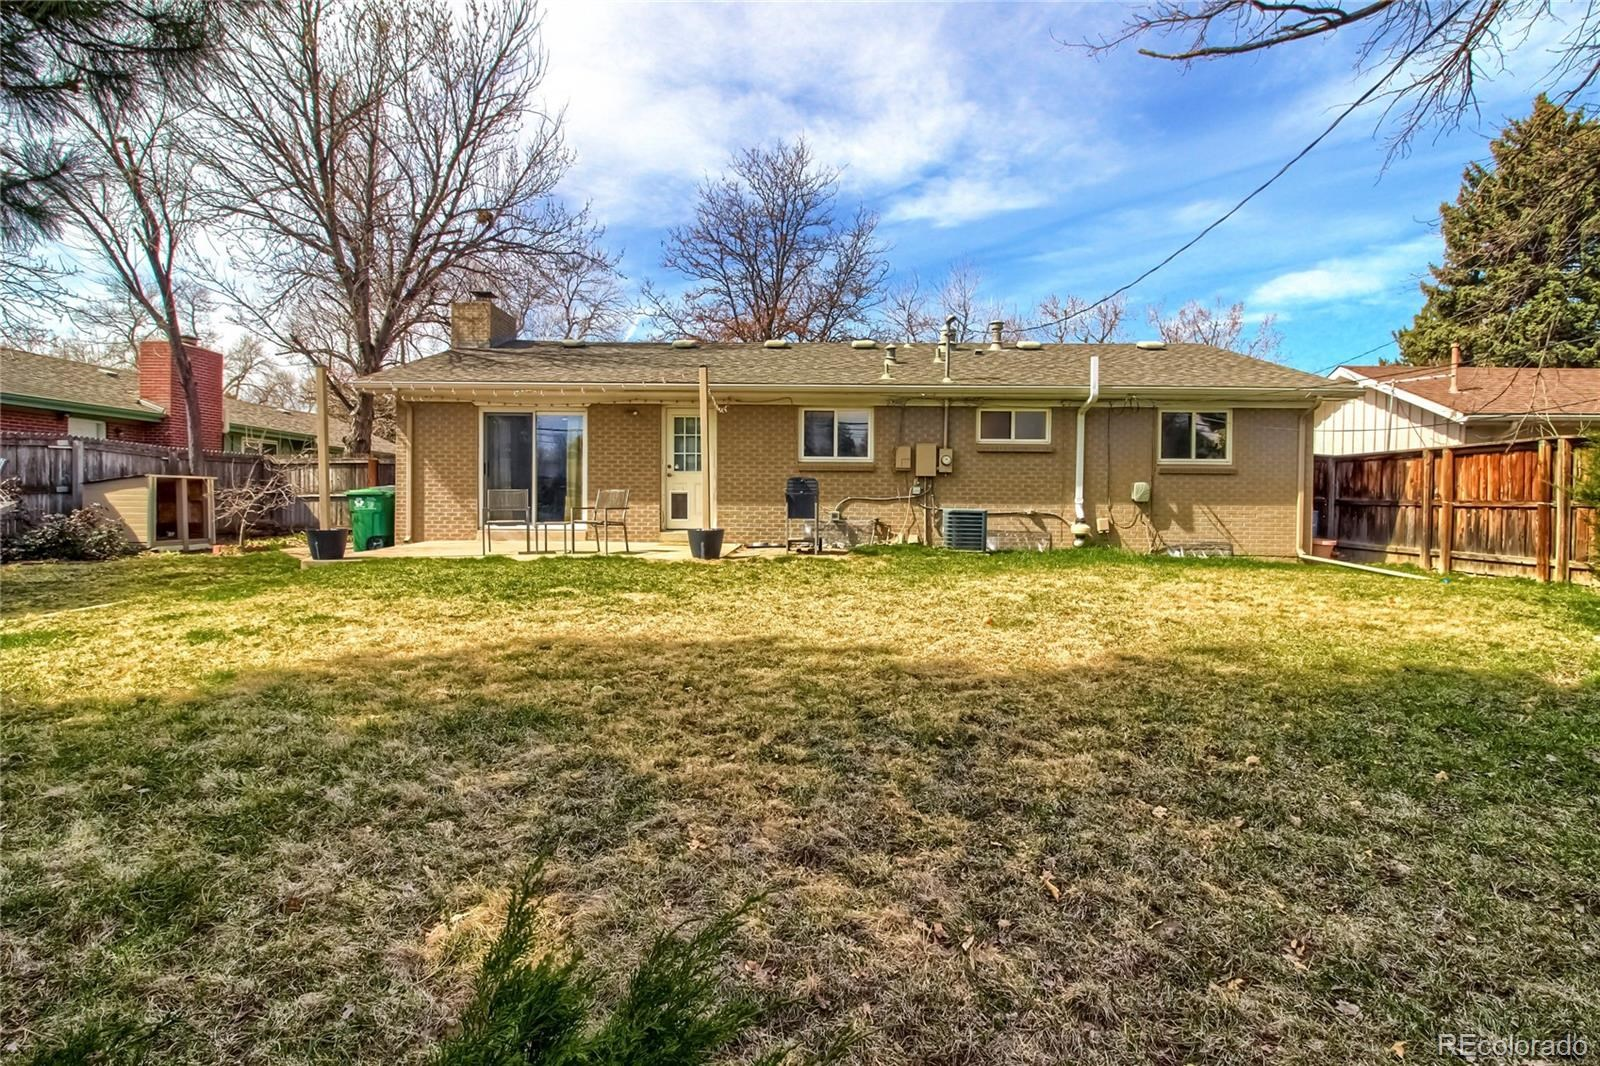 MLS# 8085723 - 26 - 430 S Poplar Way, Denver, CO 80224